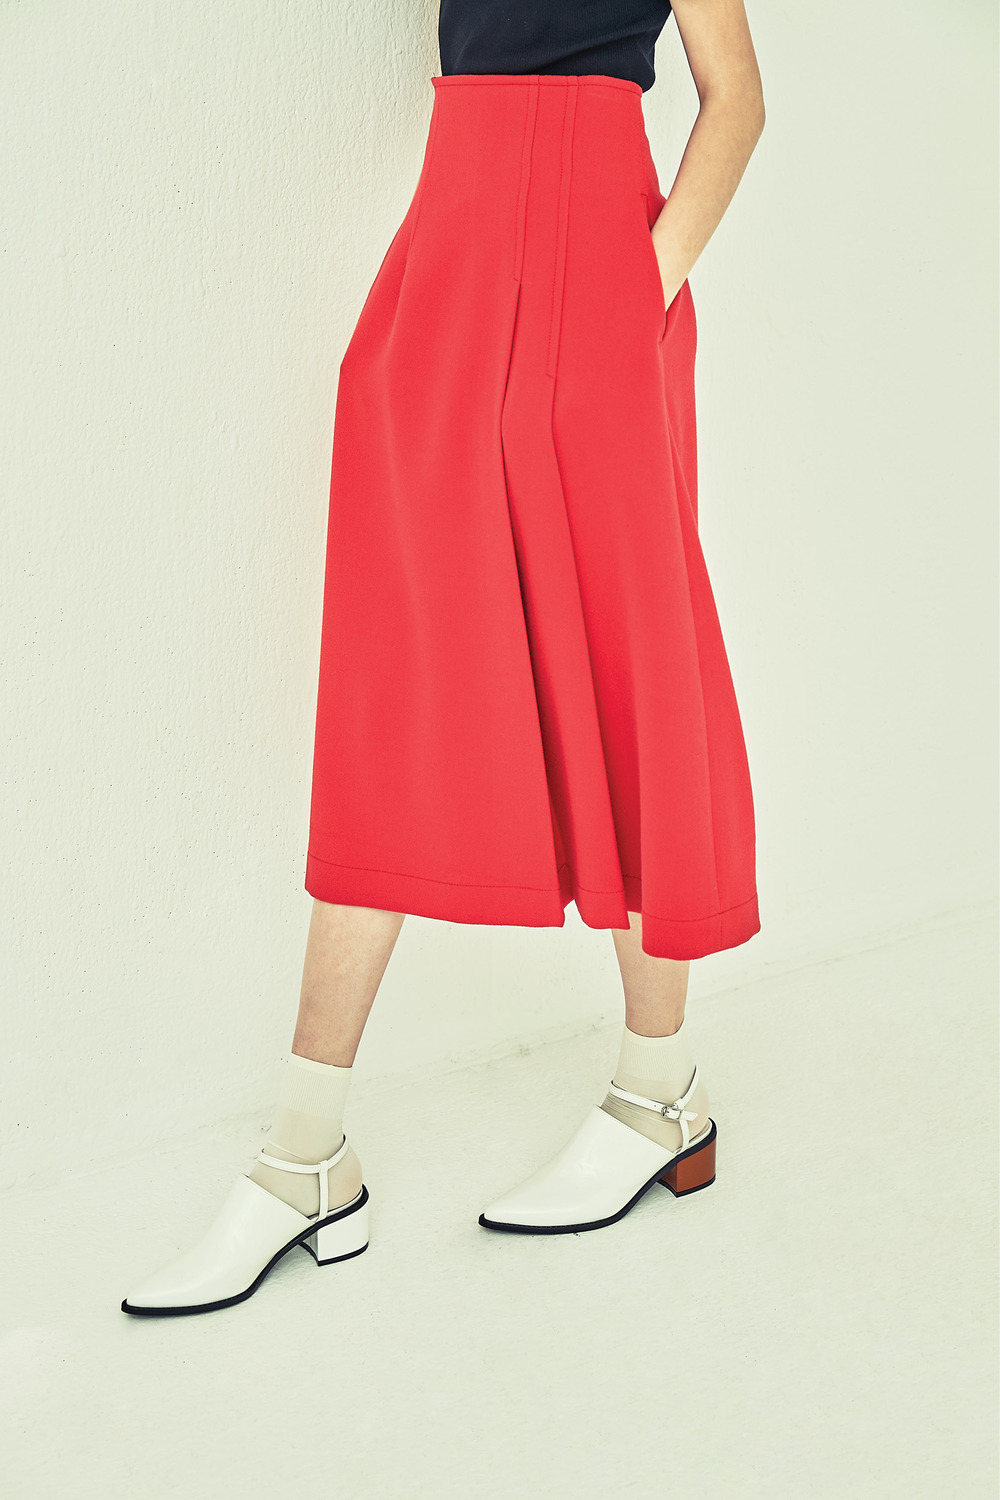 HIGH WAIST TUCK SKSK73001 RED